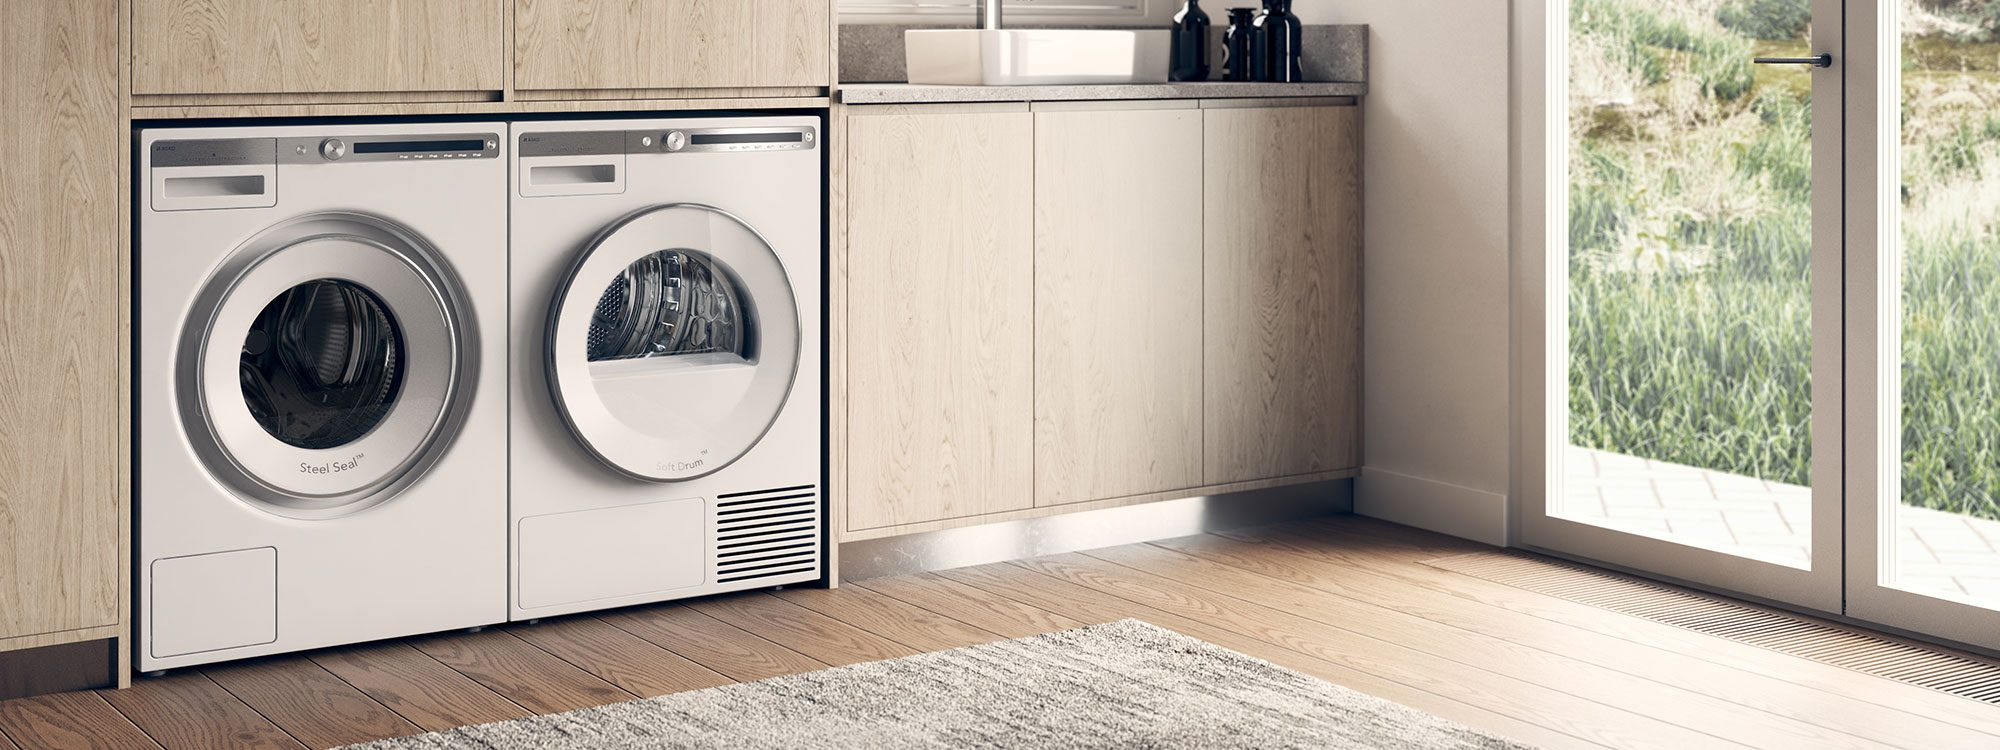 ASKO Laundry products for your laundry room